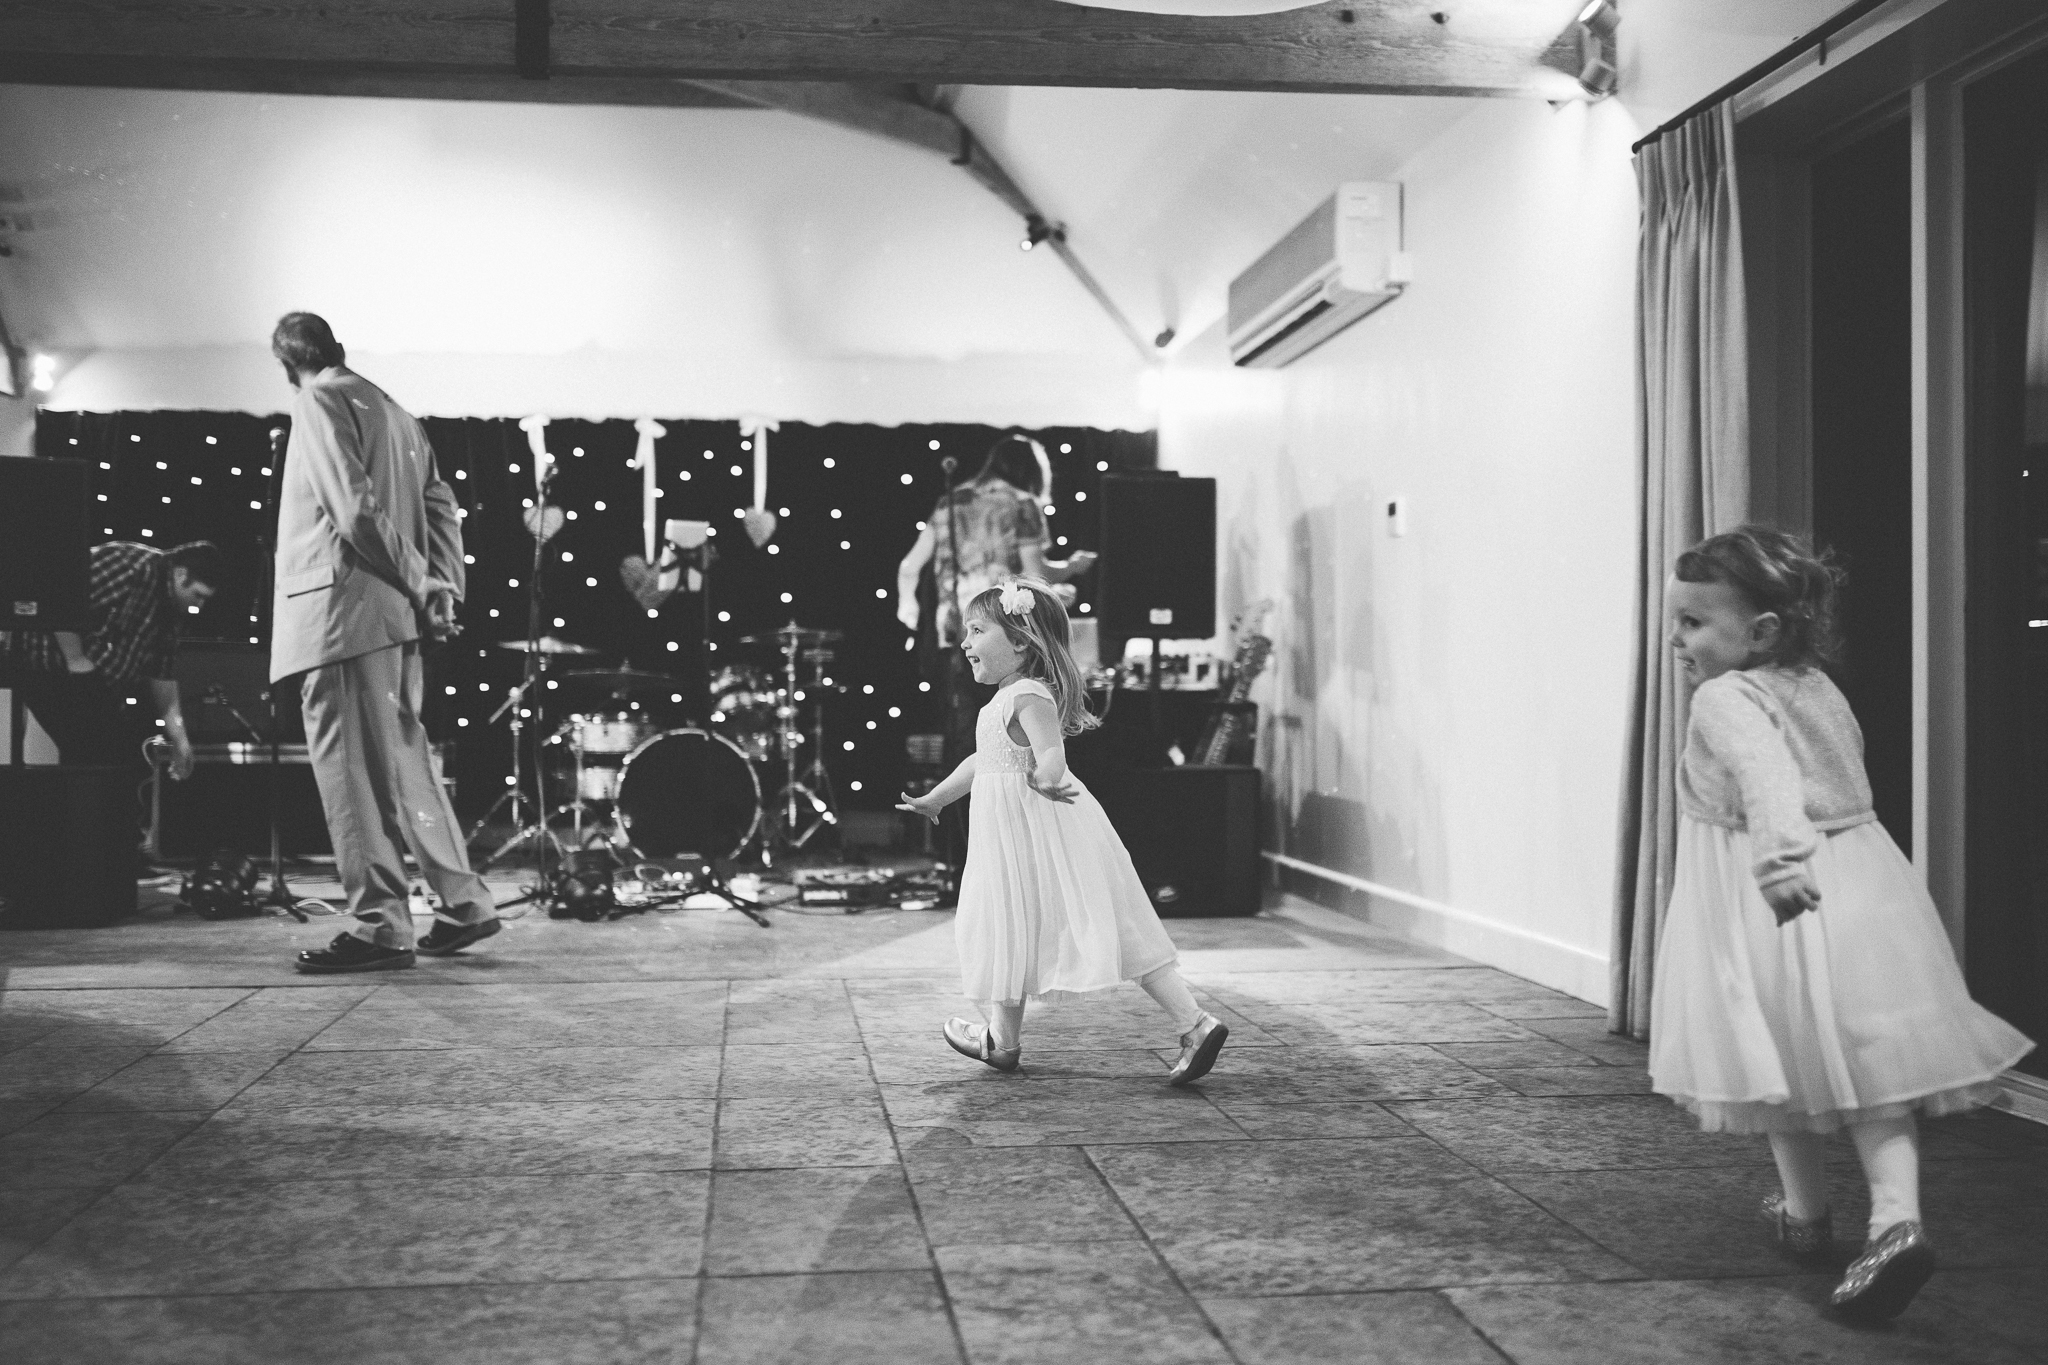 Farbridge Barn Wedding Creative Alternative Photo Chichester Joanna Nicole Photography (115 of 133).jpg